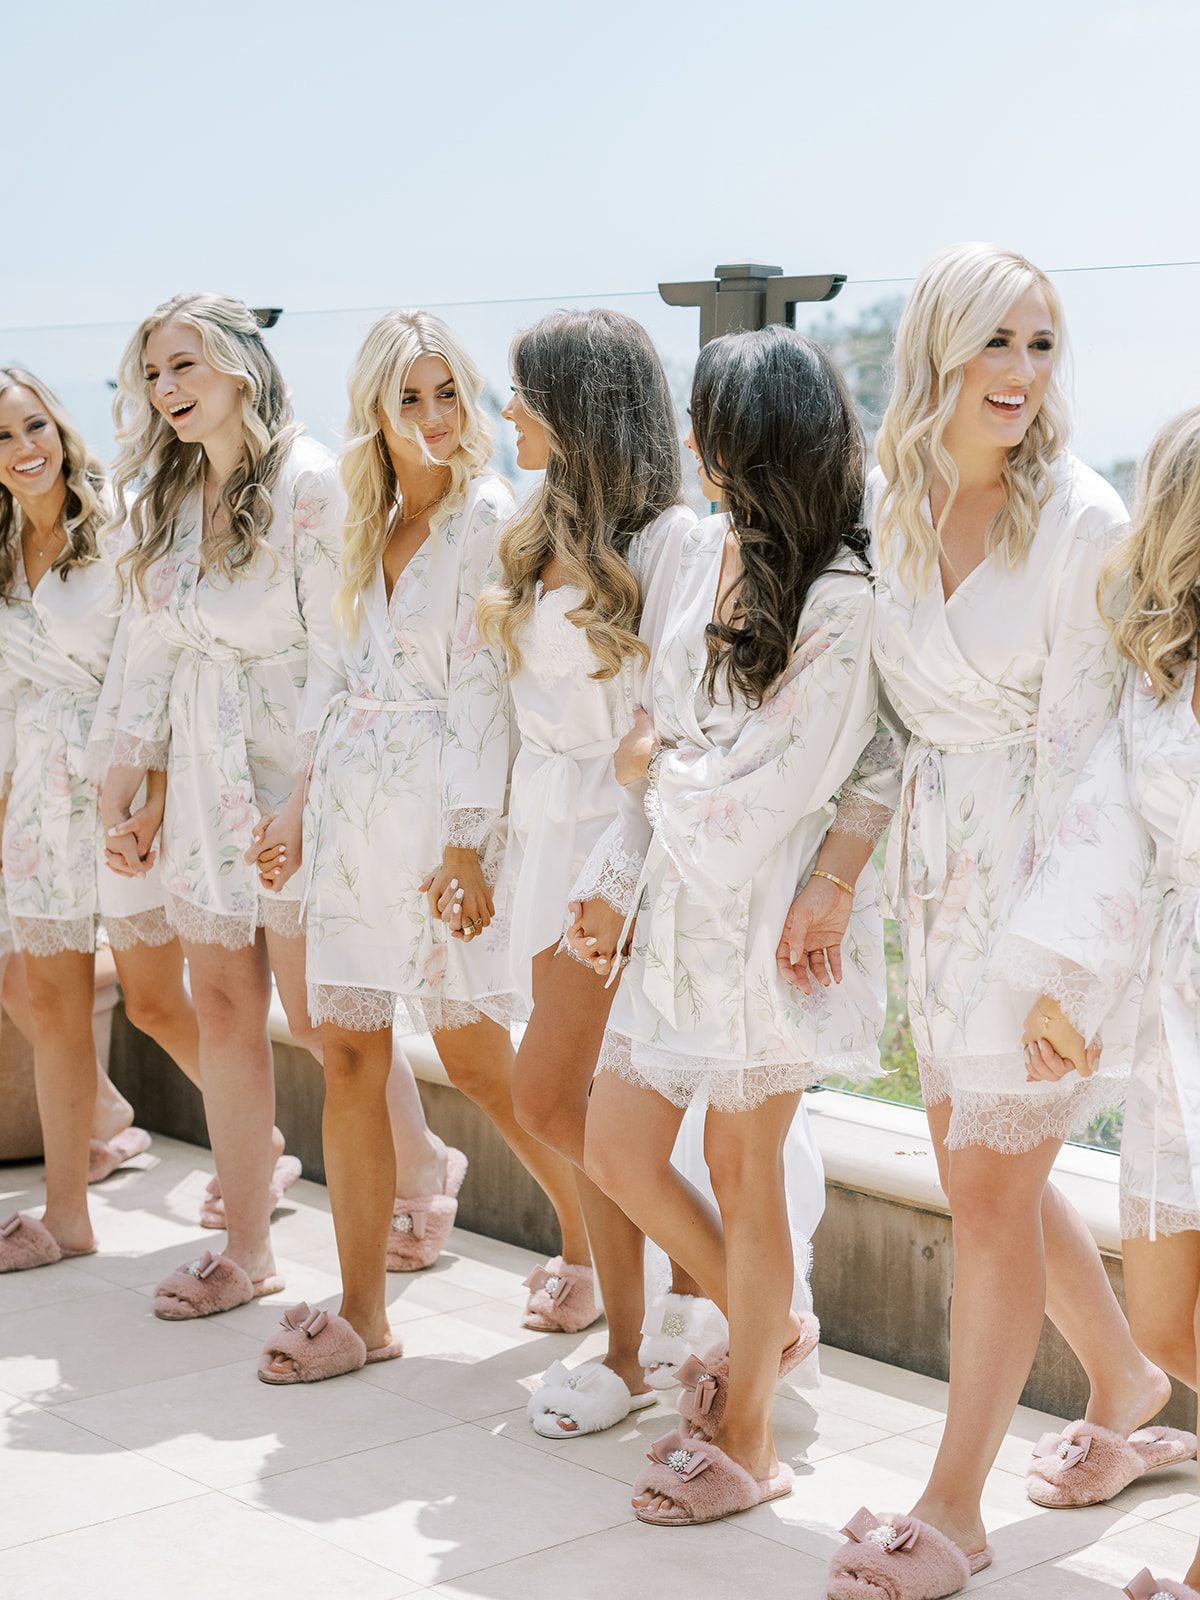 bridesmaids in matching white patterned robes walking hand in hand